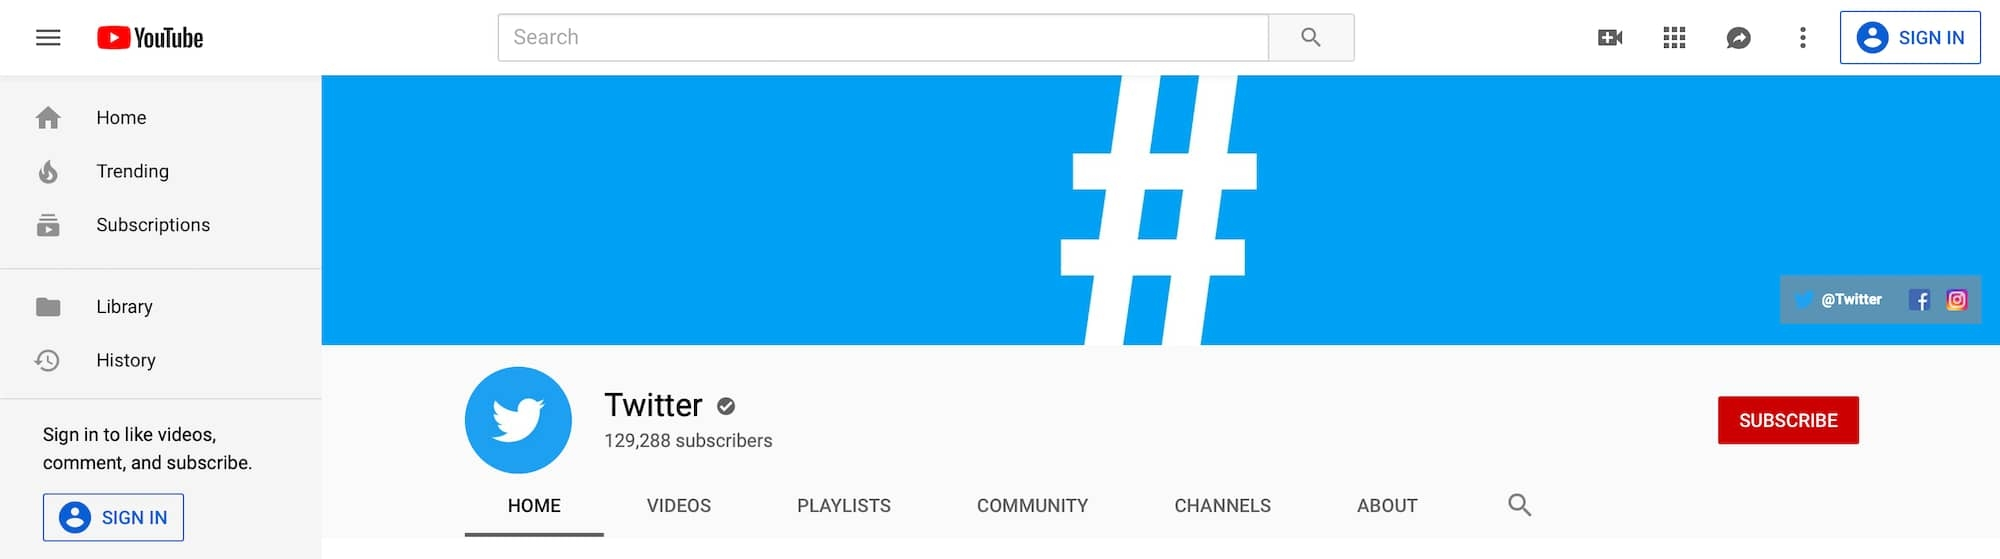 Twitter's channel page and their YouTube logo